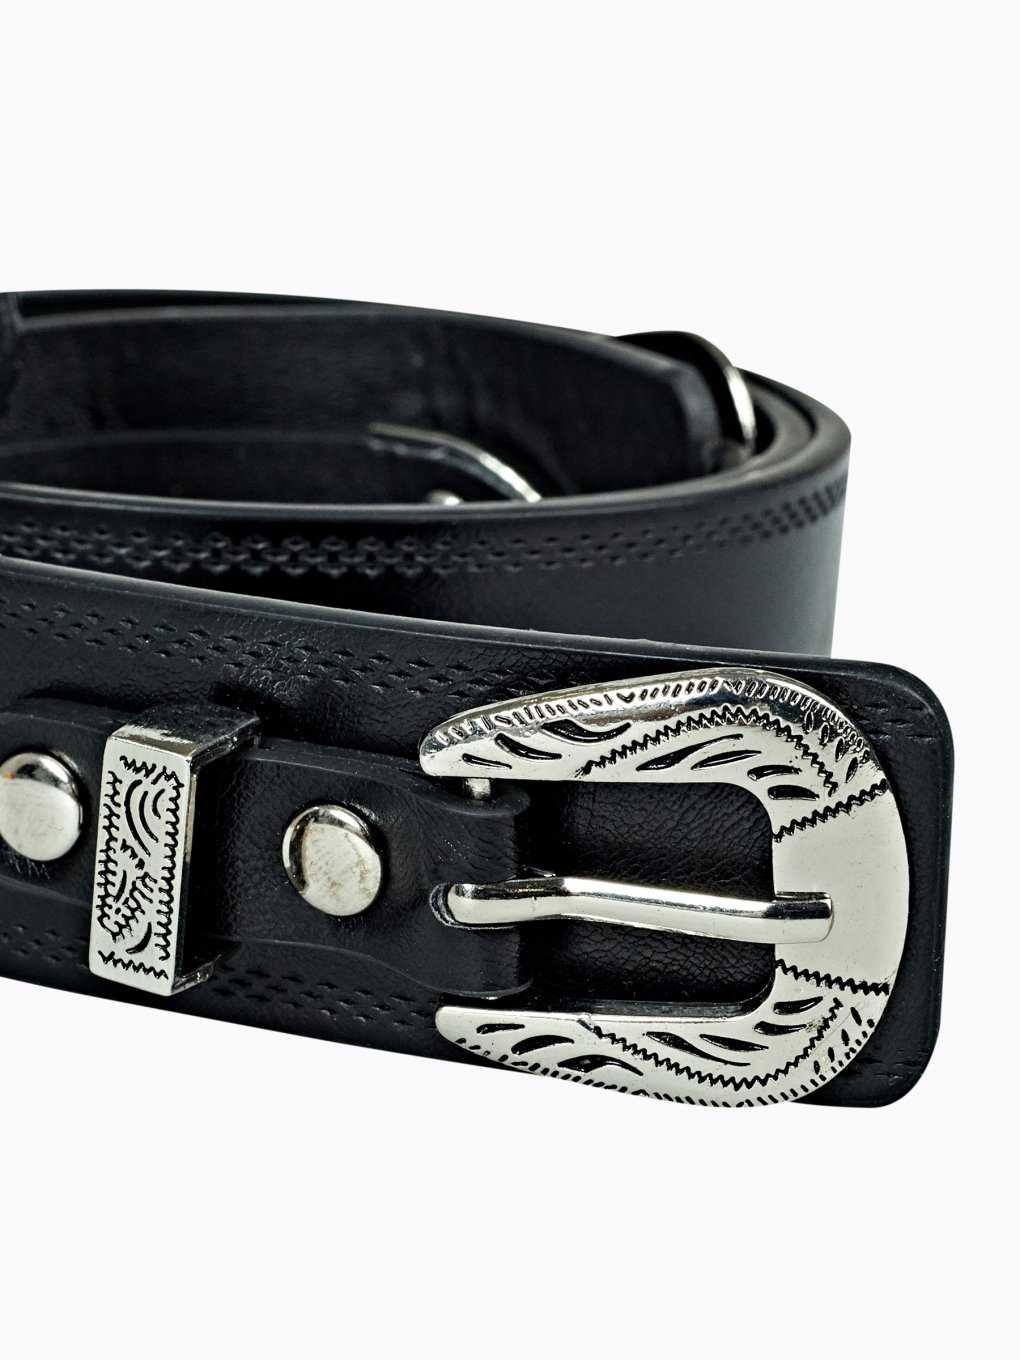 Faux leather belt with double buckle